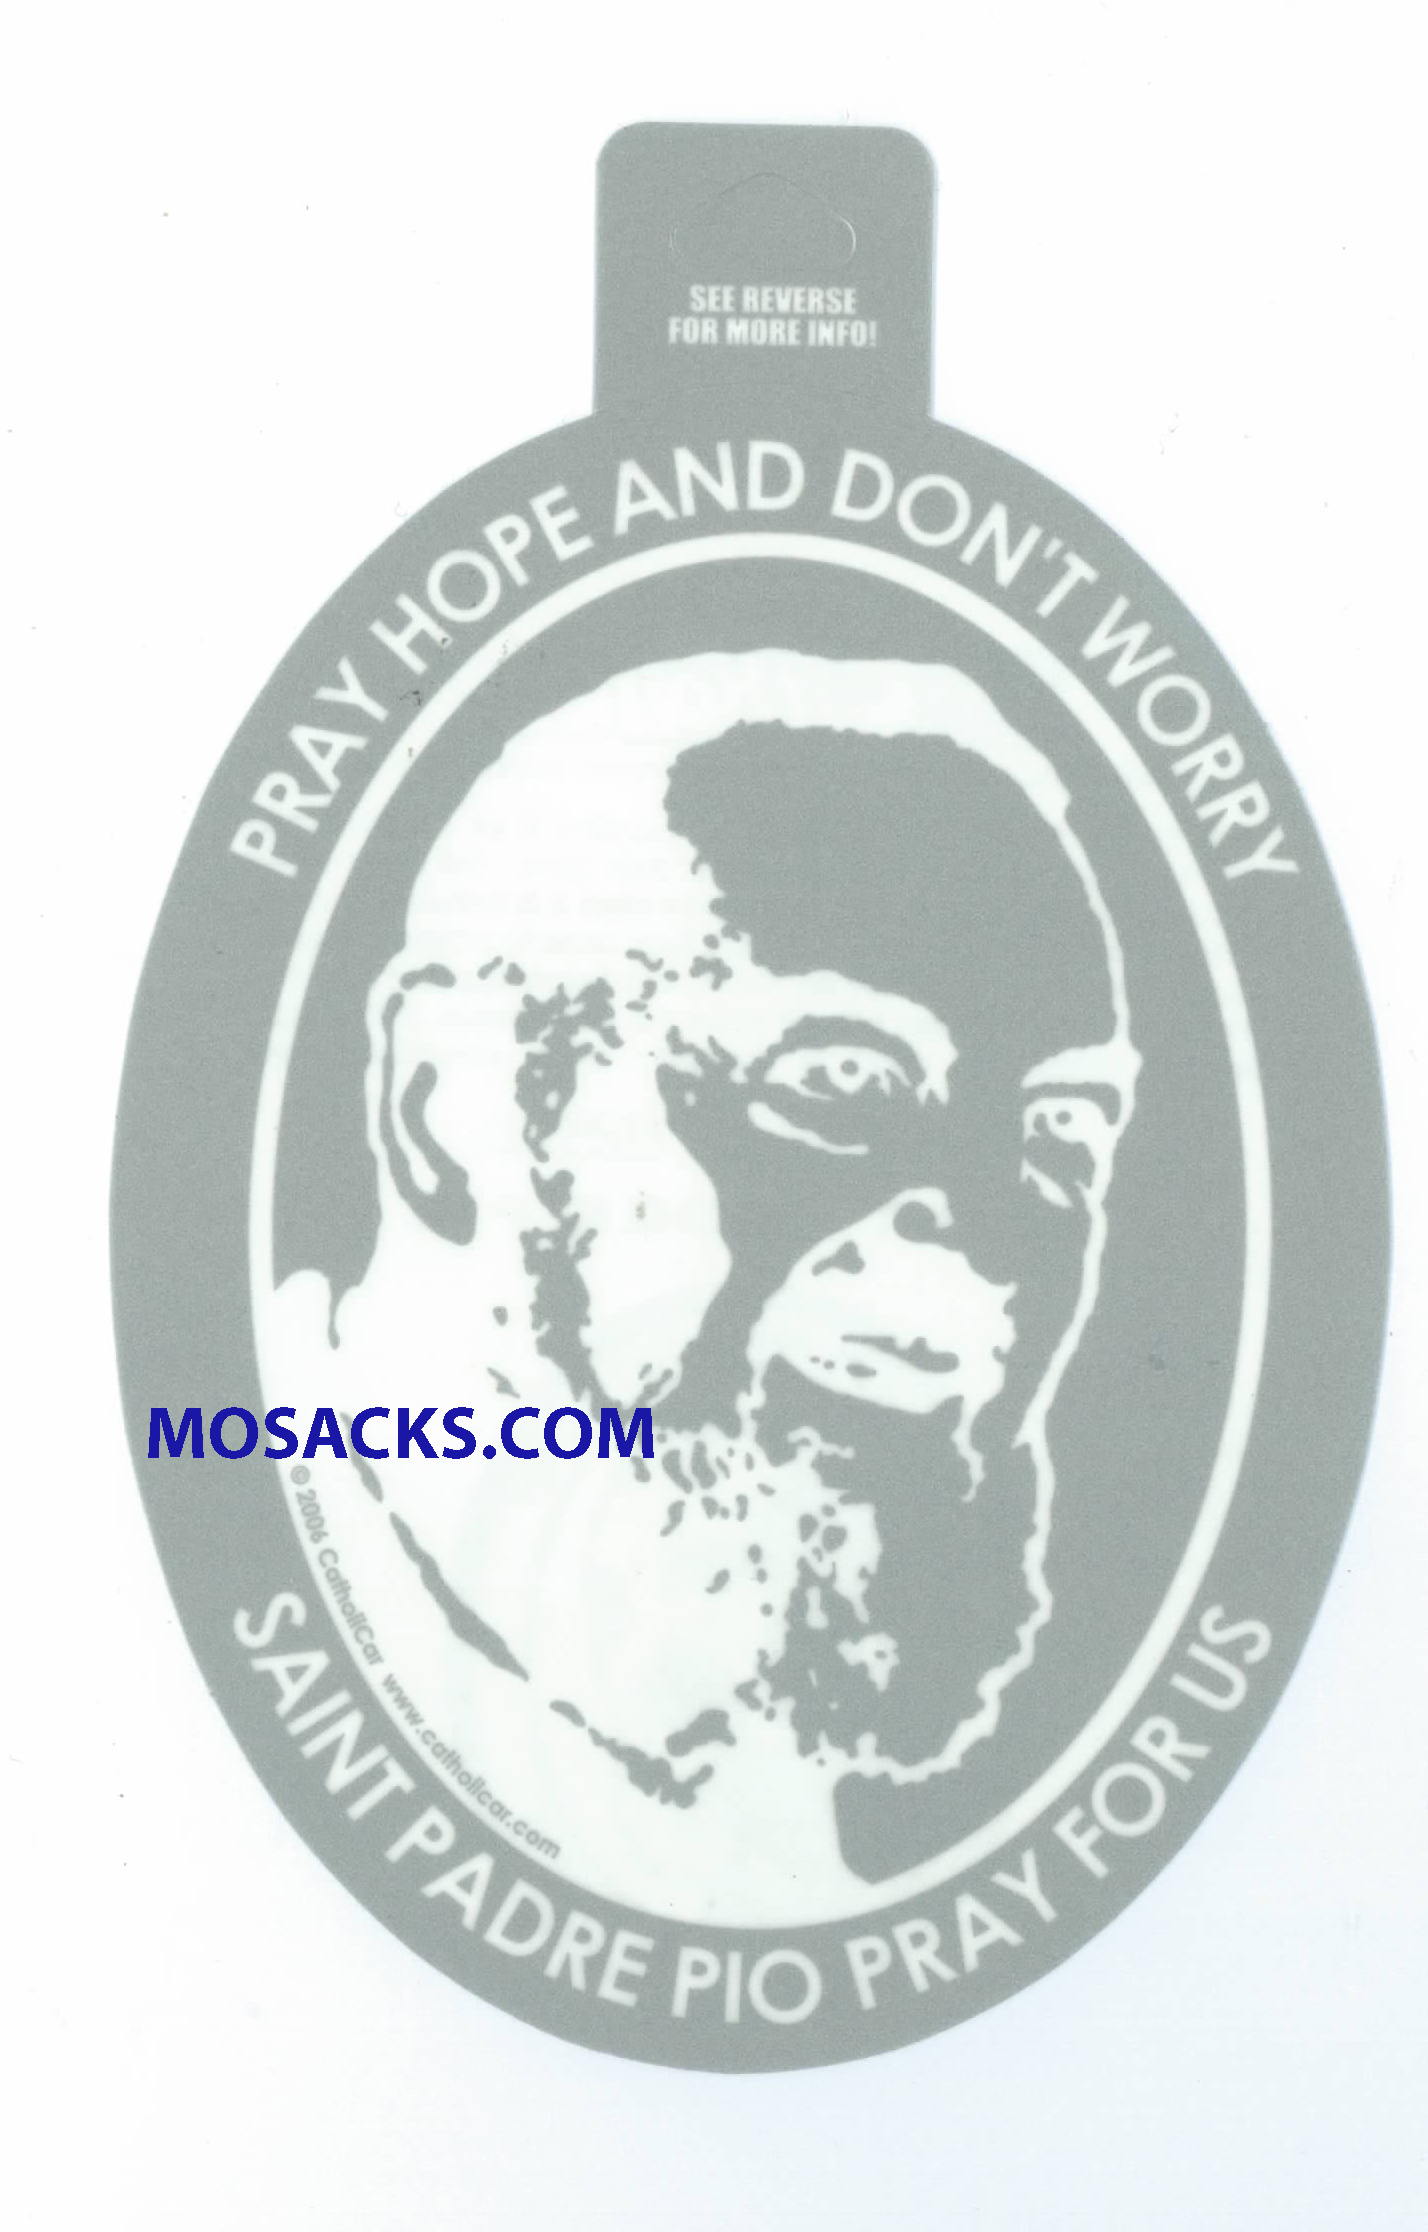 Saint Padre Pio Oval Decal Christian Decal, Catholic Decal